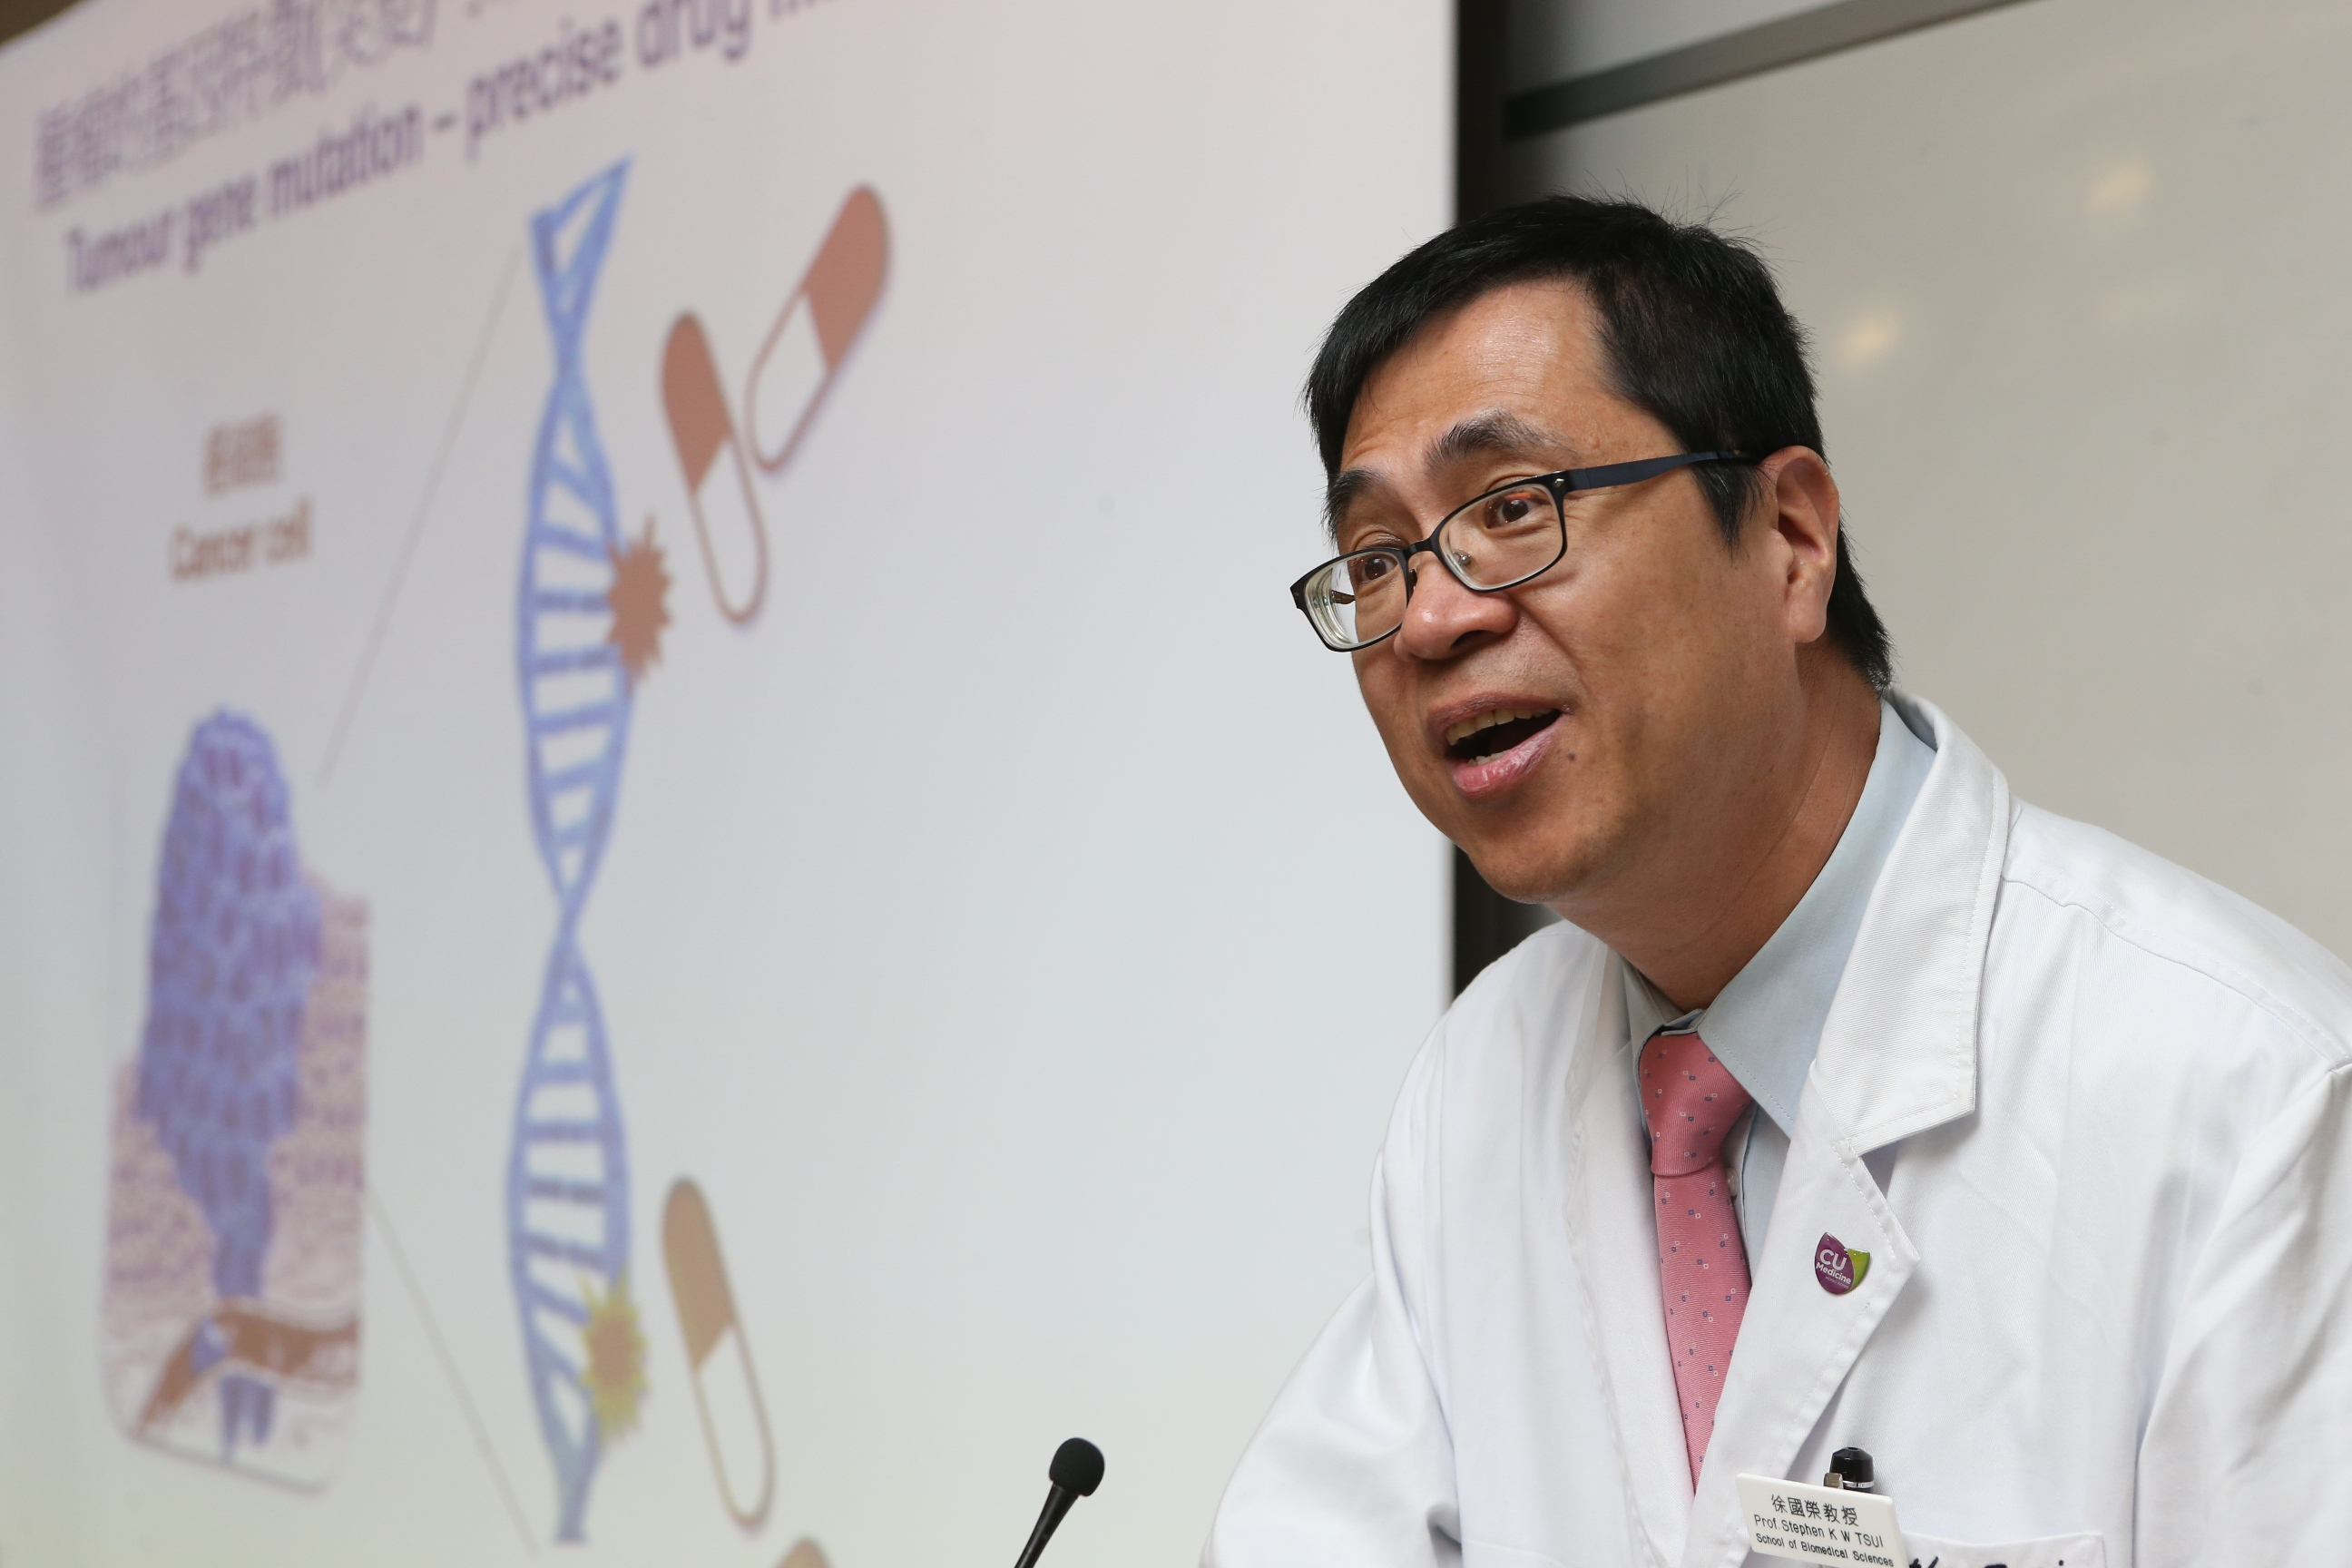 Professor TSUI says CUHK's 'Next-Generation Sequencing' technology can perform multi-gene sequencing very quickly and accurately with only small amounts of tumour DNA samples.